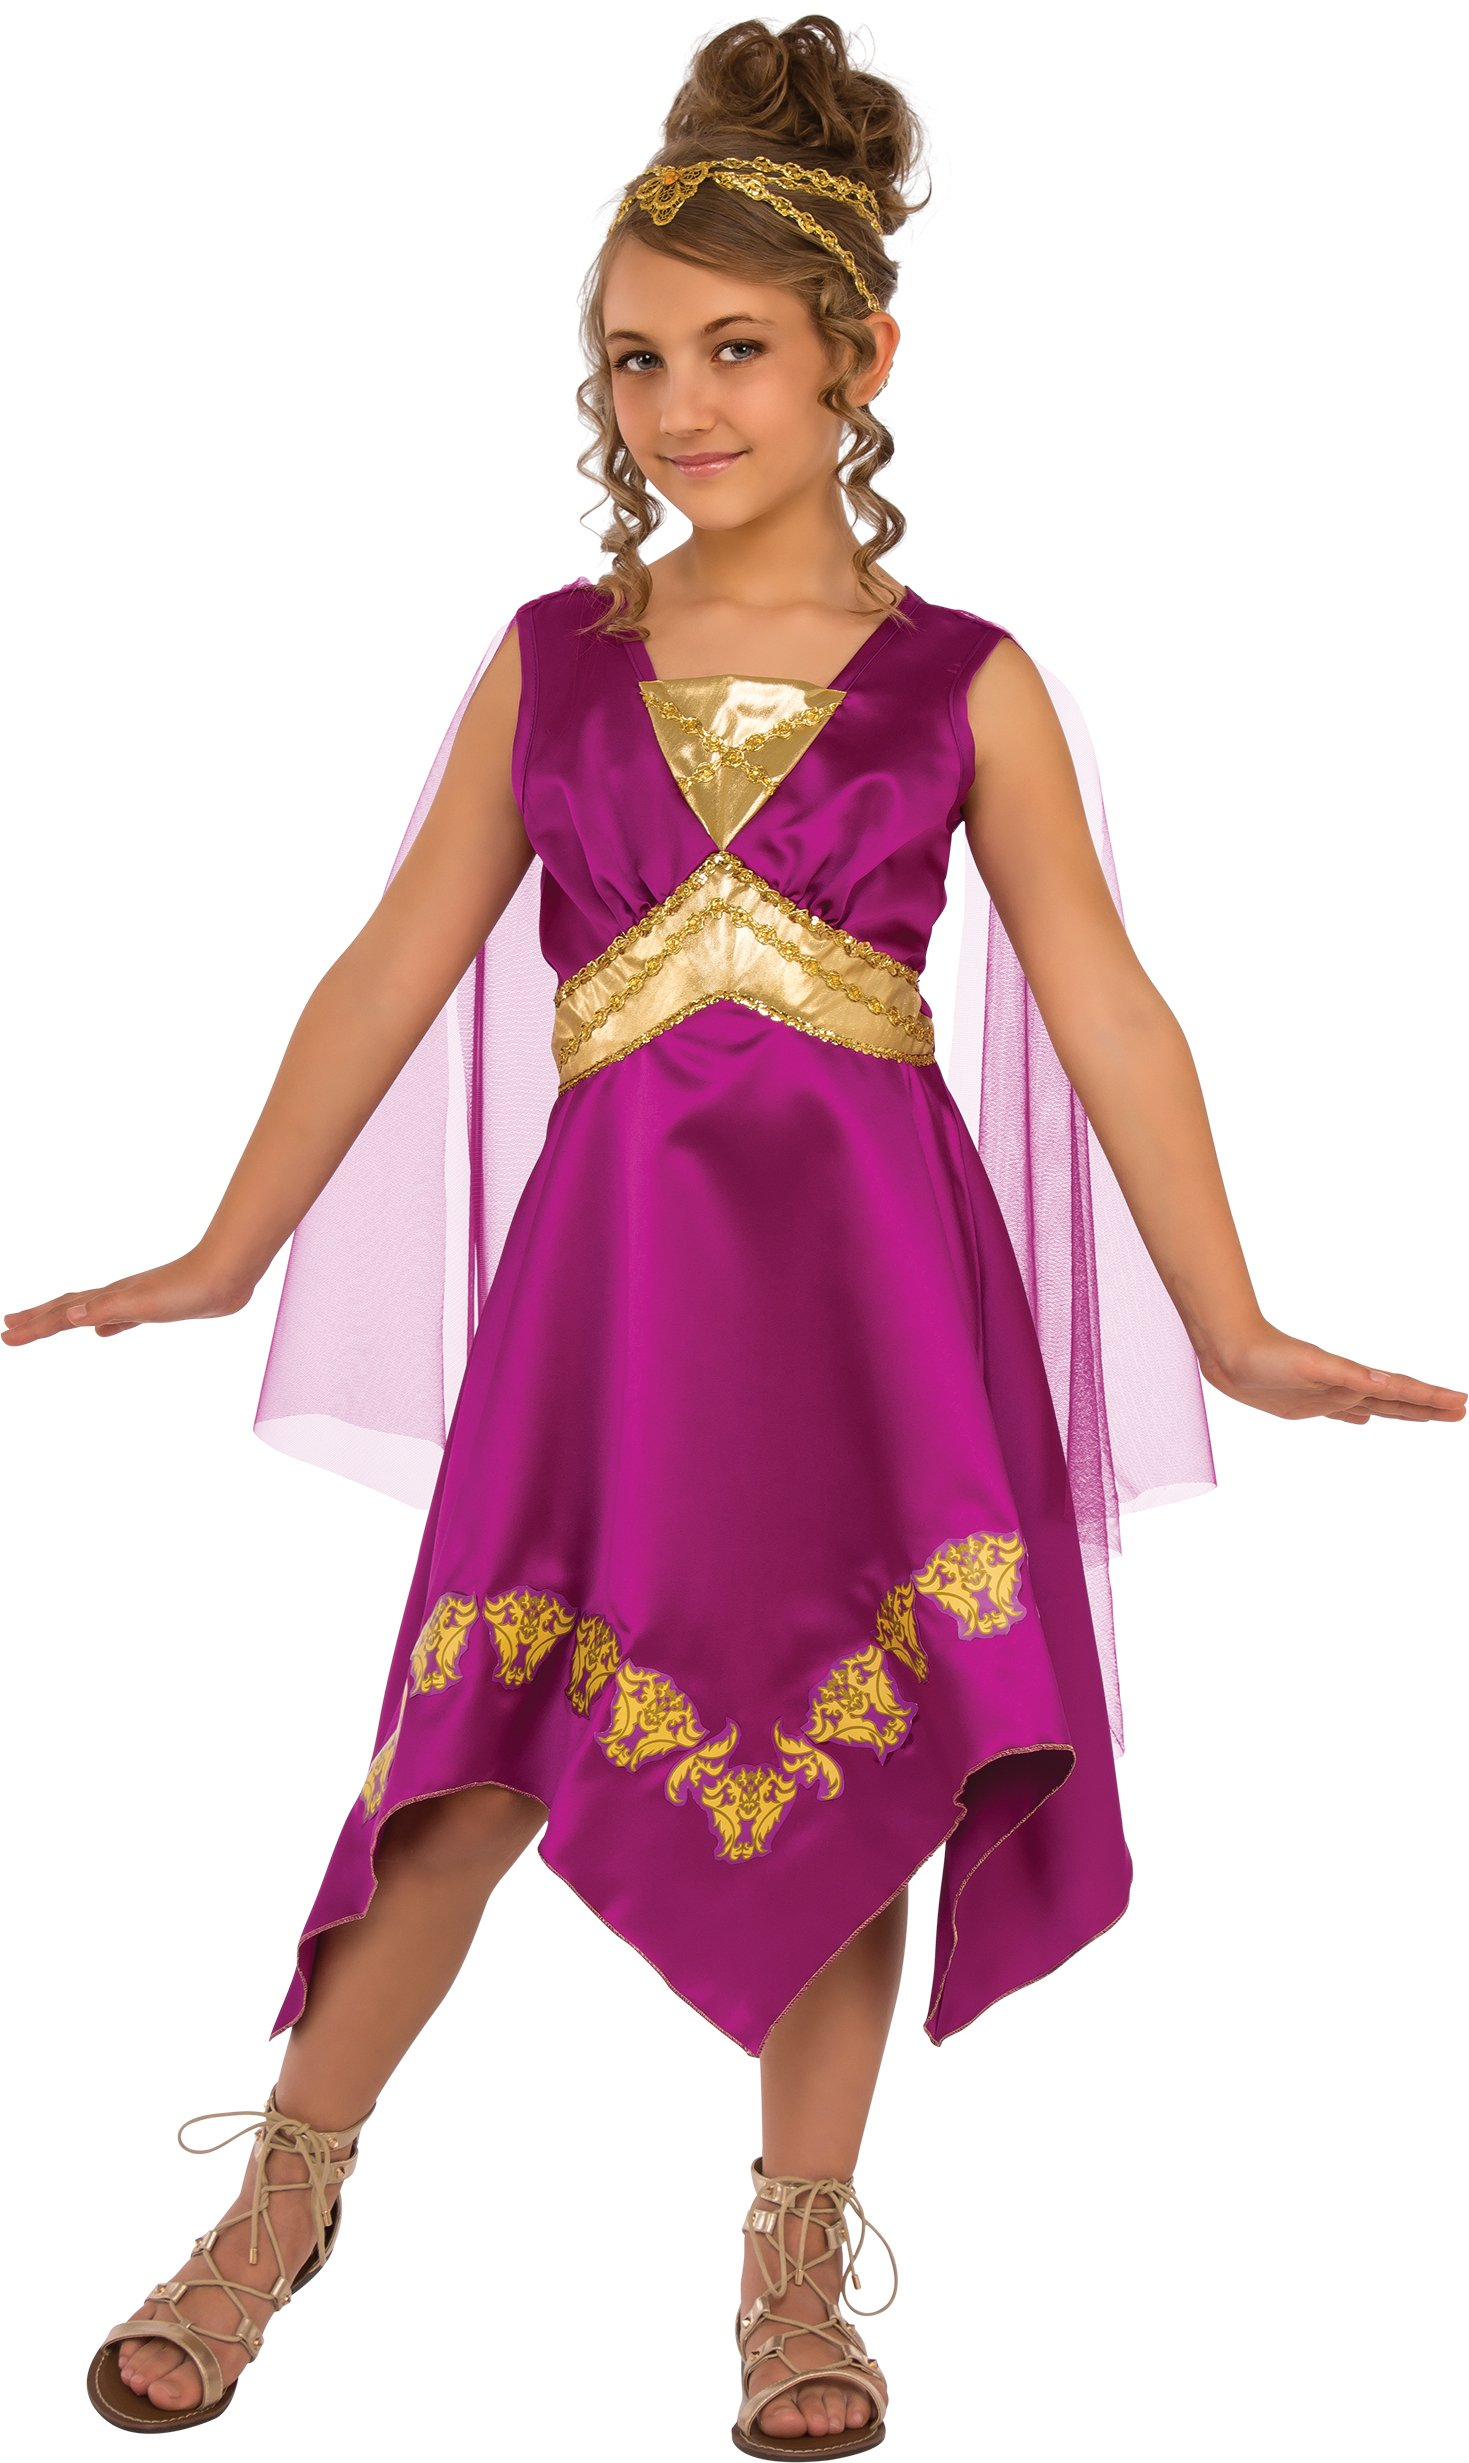 Rubies Child's Grecian Goddess Costume, Large, Multicolor